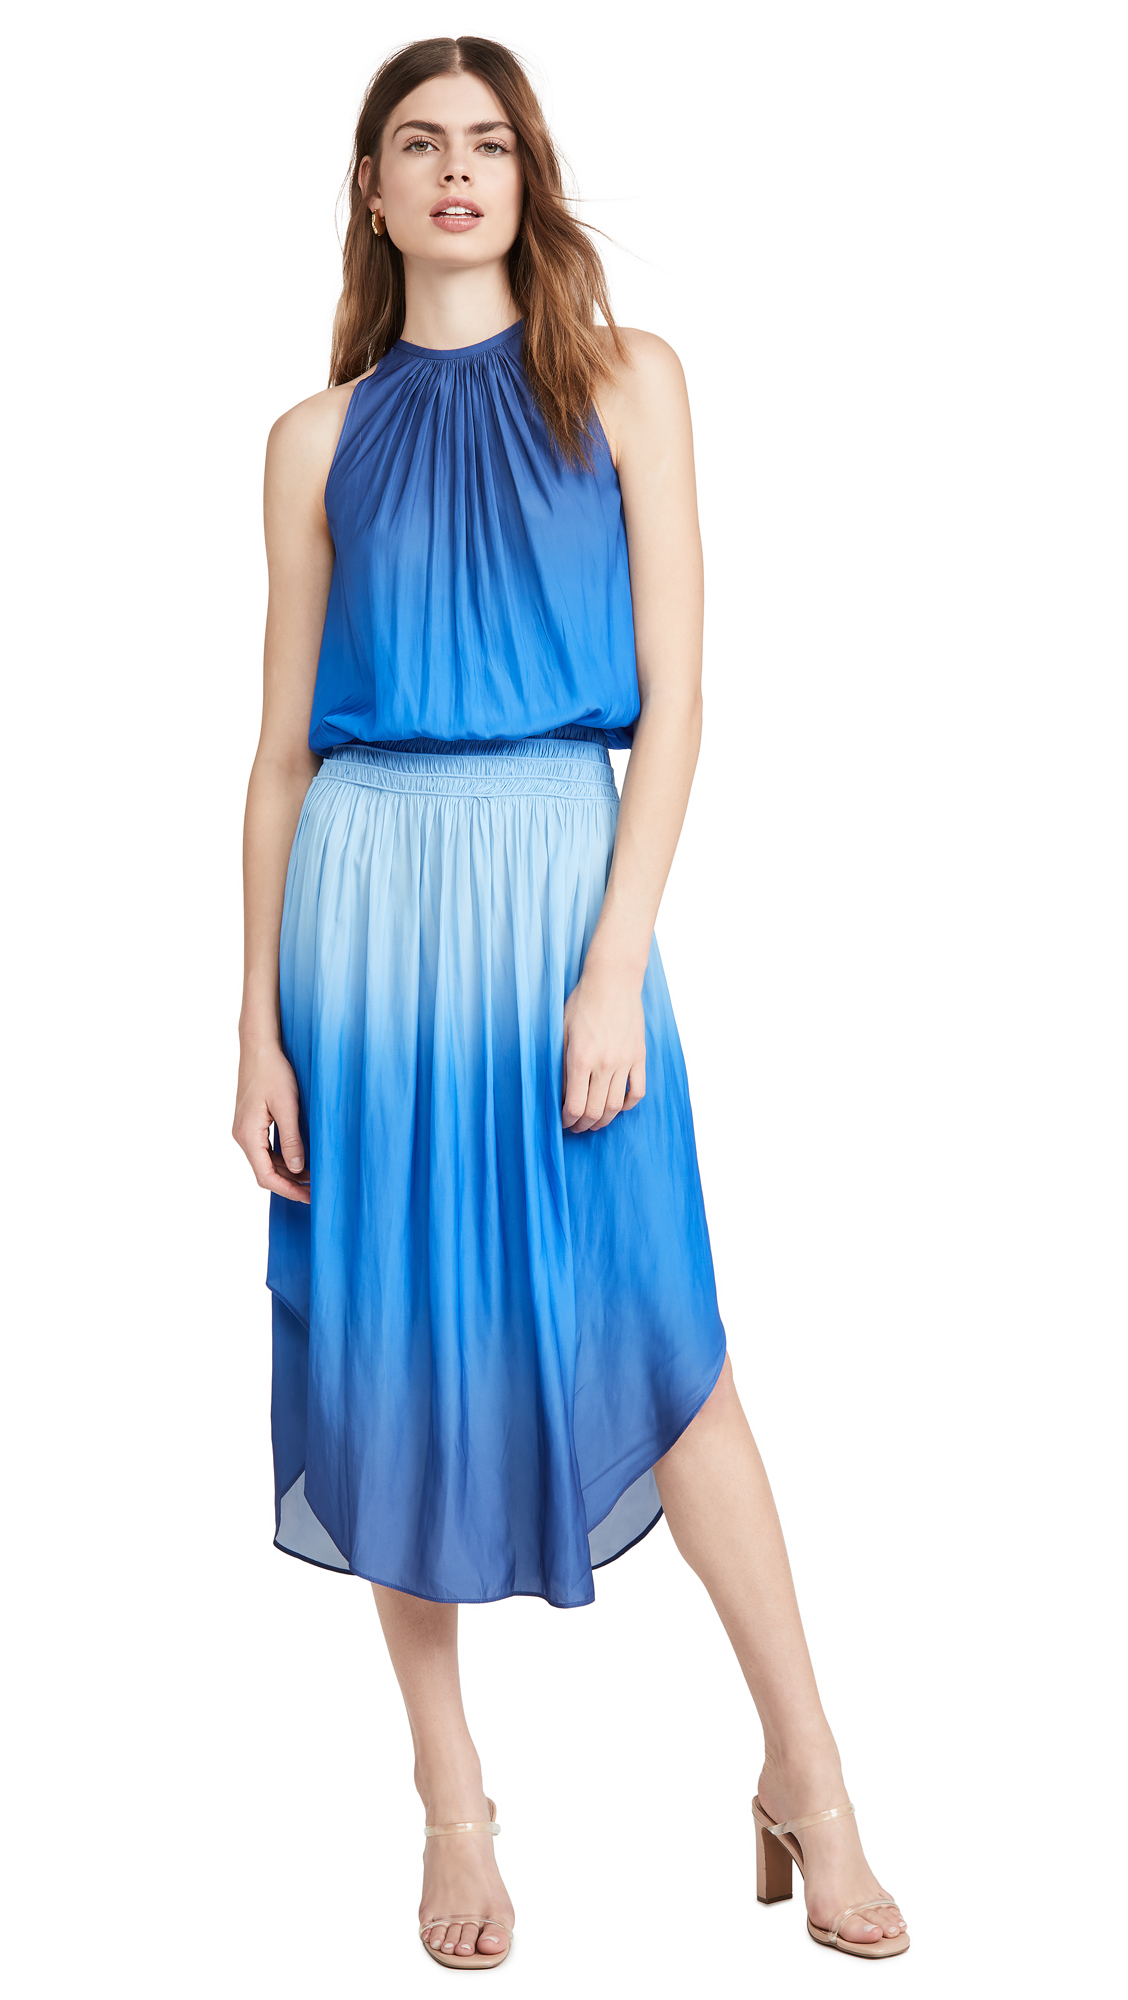 Ramy Brook Ombre Audrey Dress - 30% Off Sale